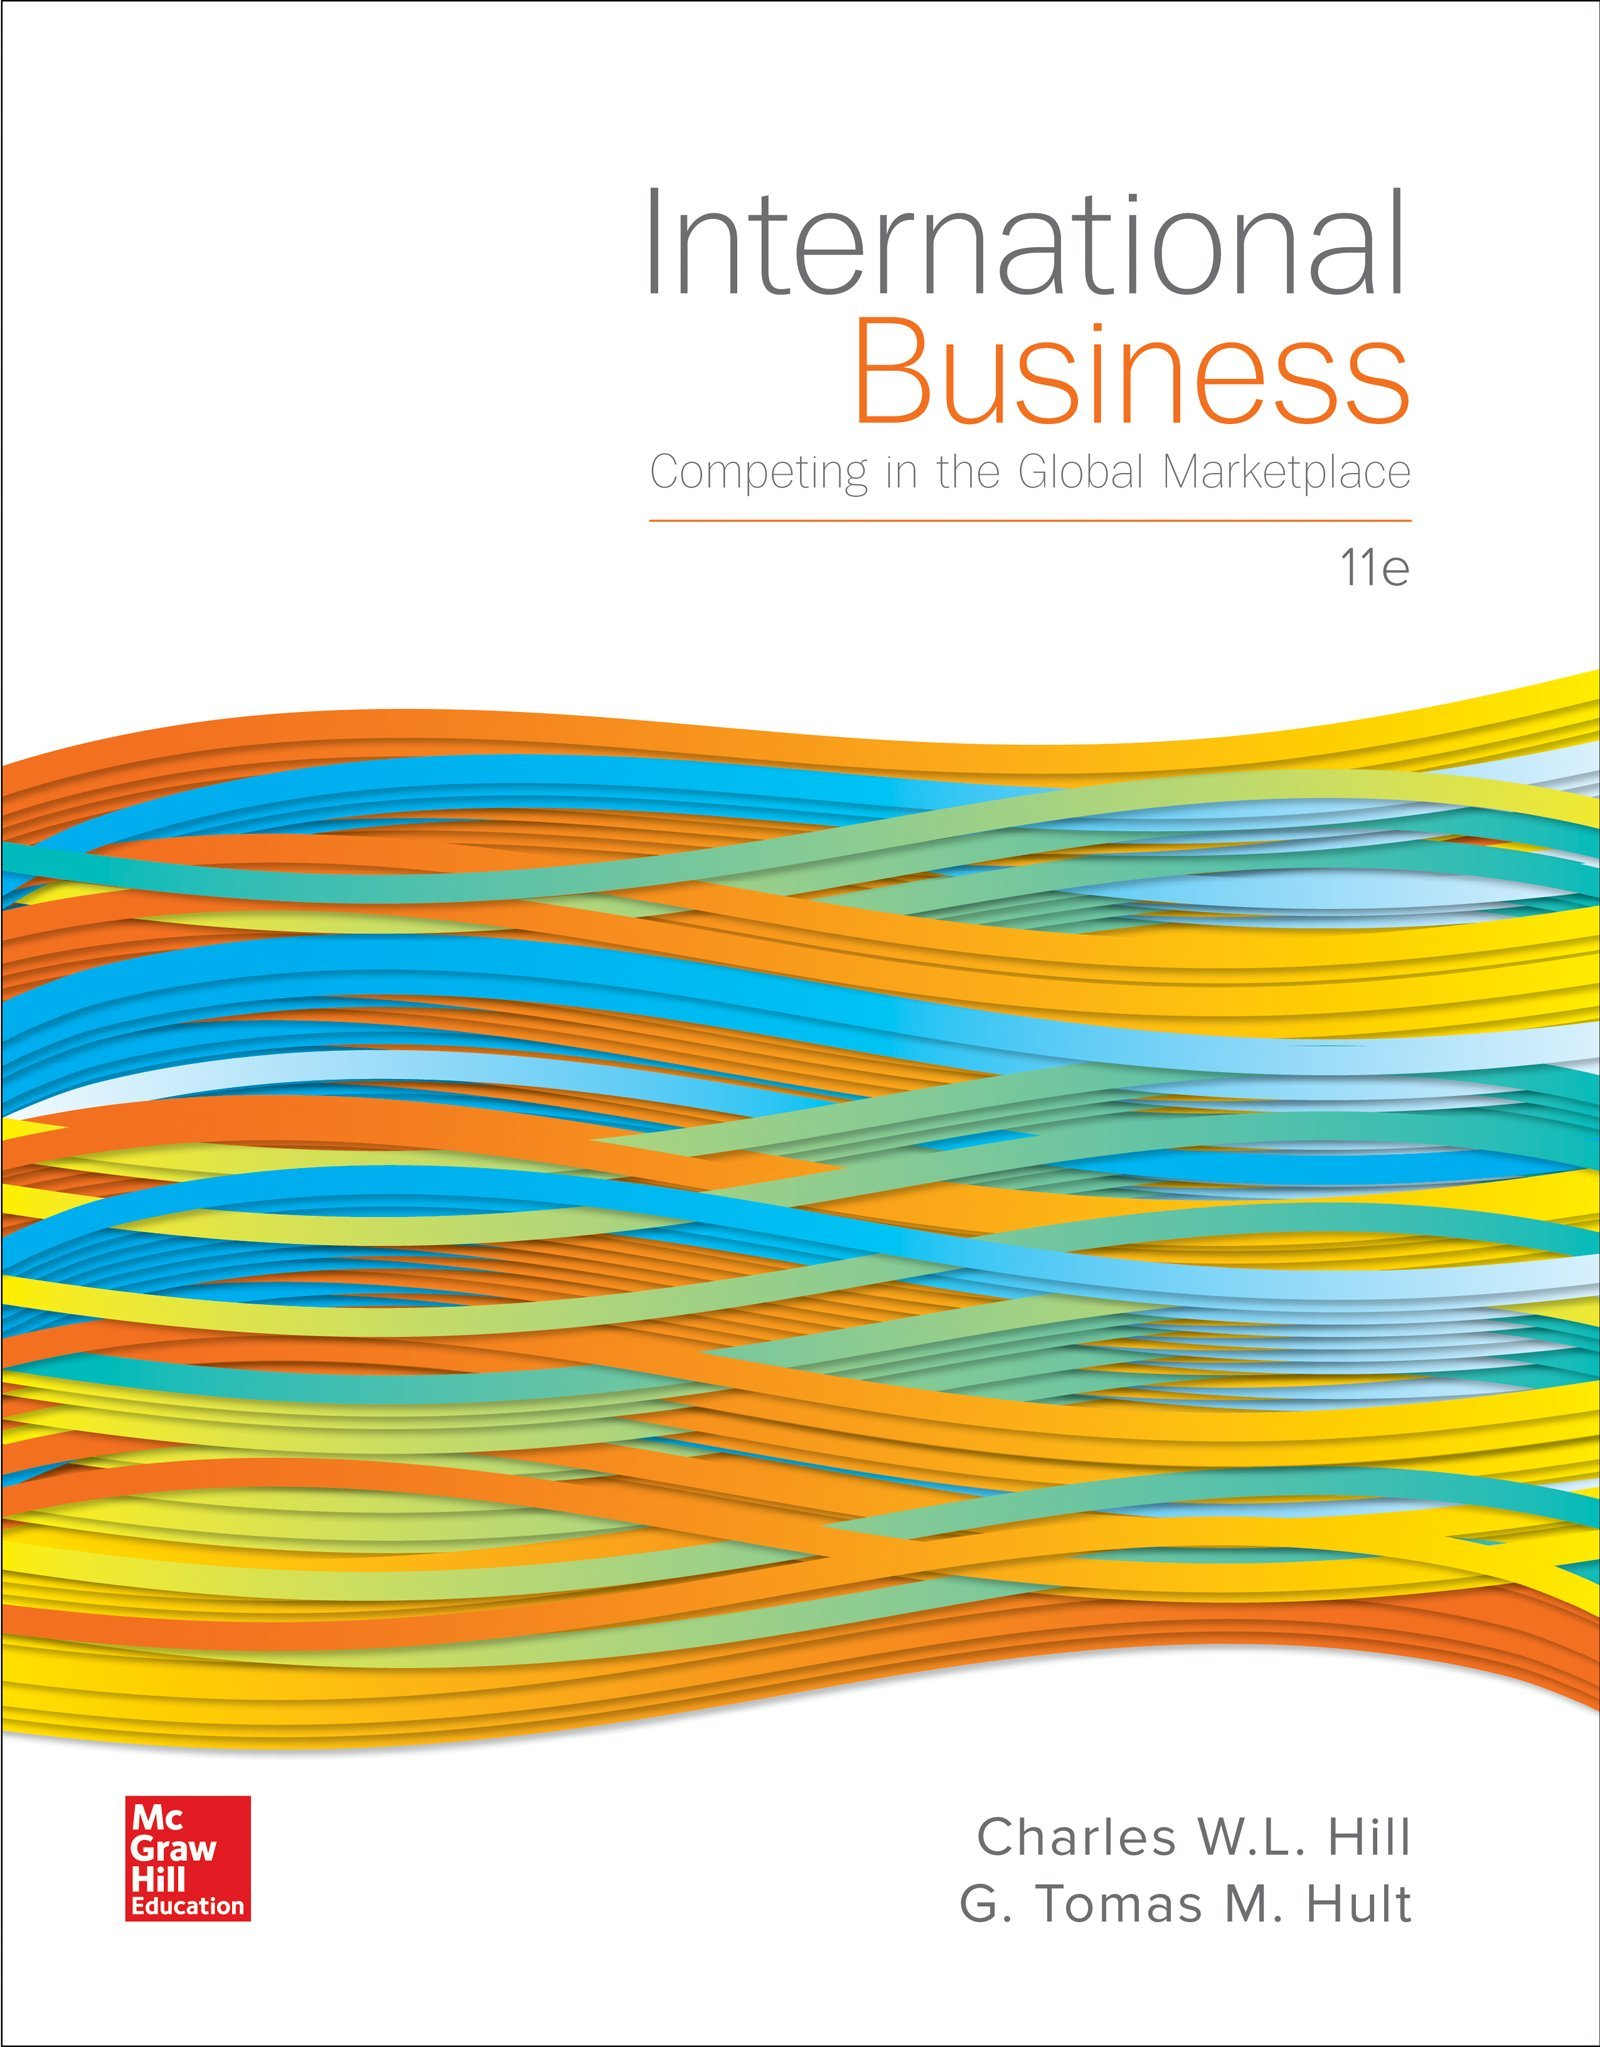 International Business: Competing in the Global Marketplace by McGraw-Hill Education